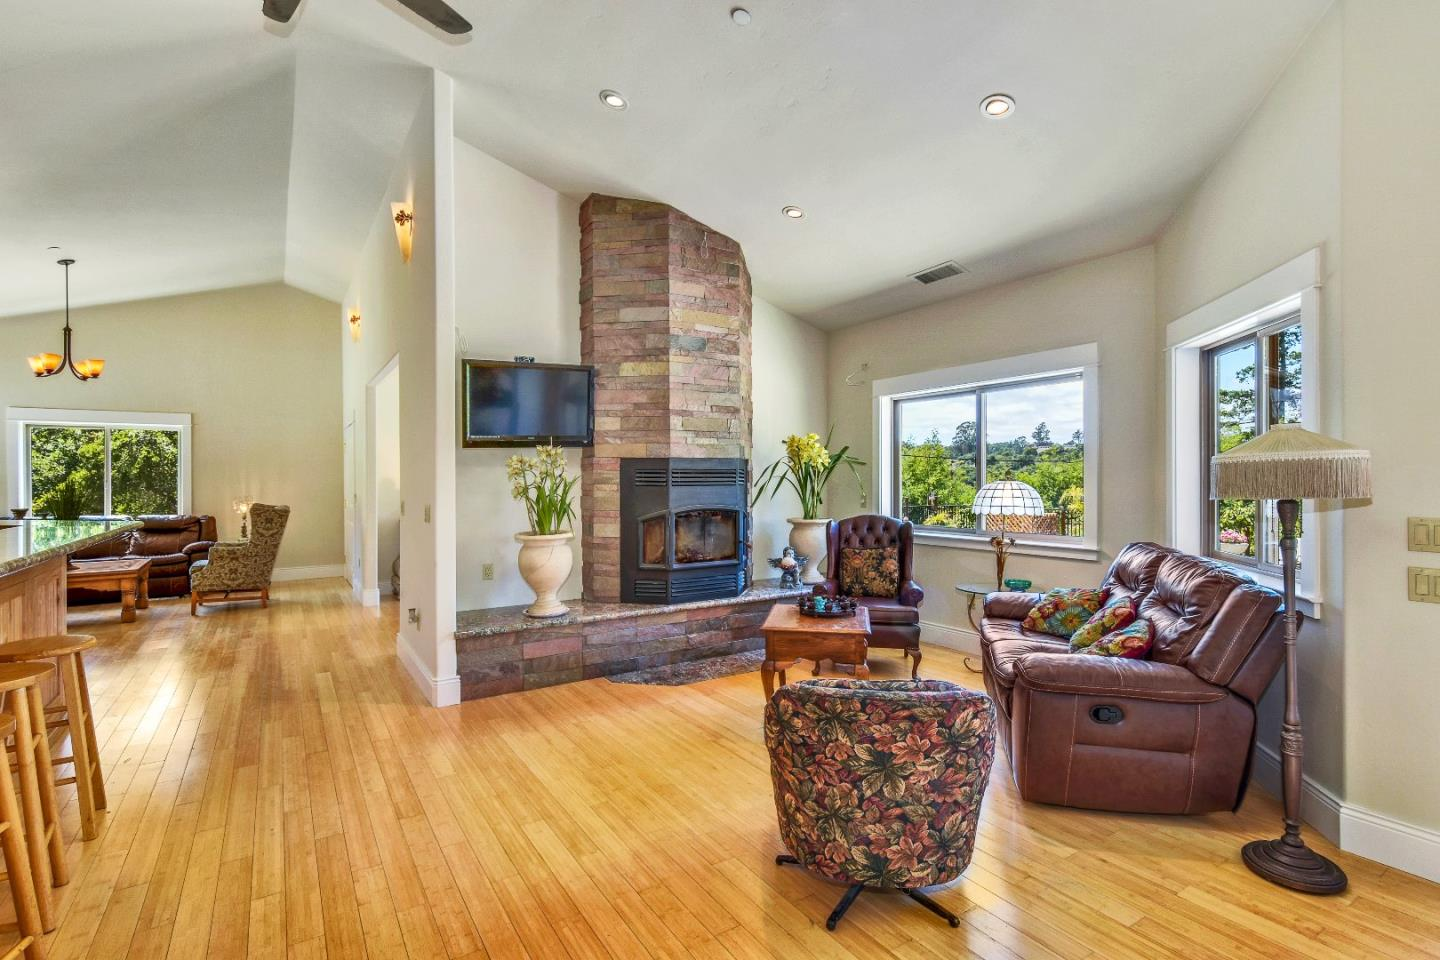 Additional photo for property listing at 1120 Trabing Road  Watsonville, California 95076 Estados Unidos